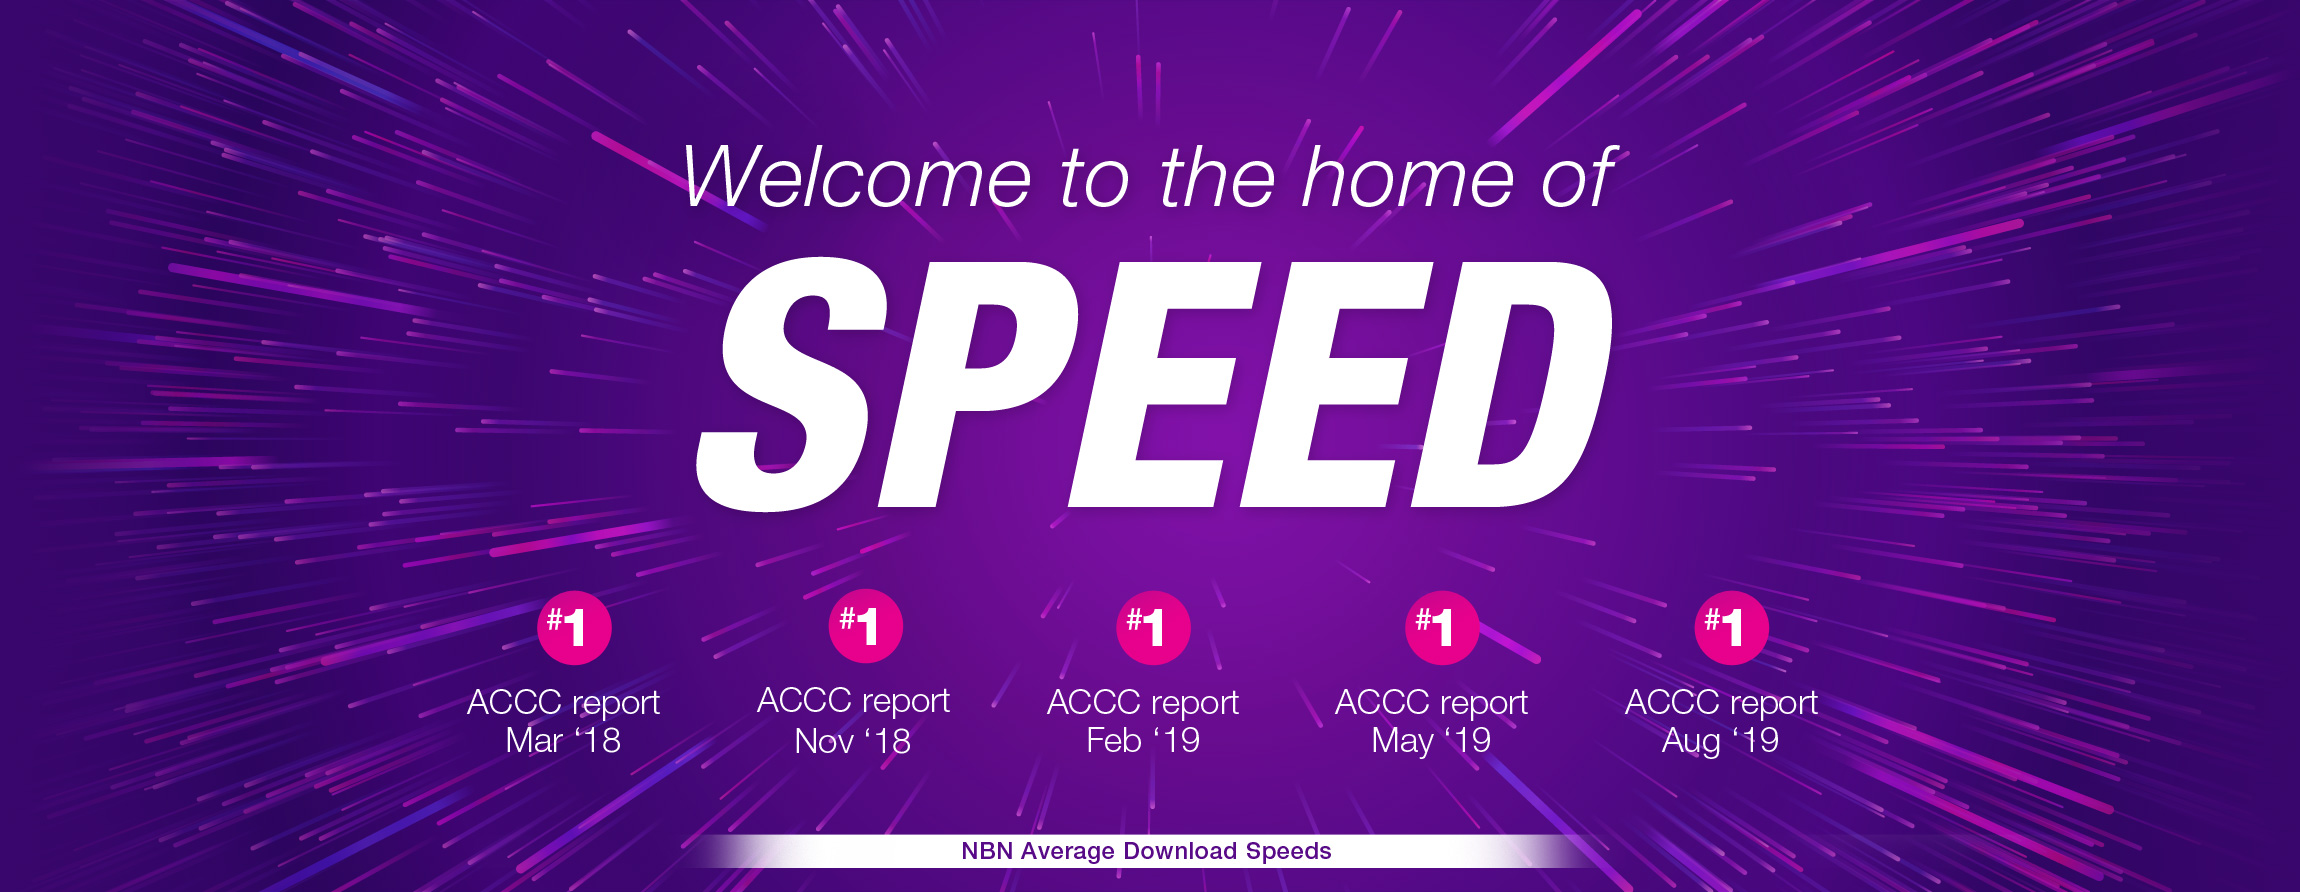 TPG the home of speed - Rated #1 by ACCC for NBN download average download speeds